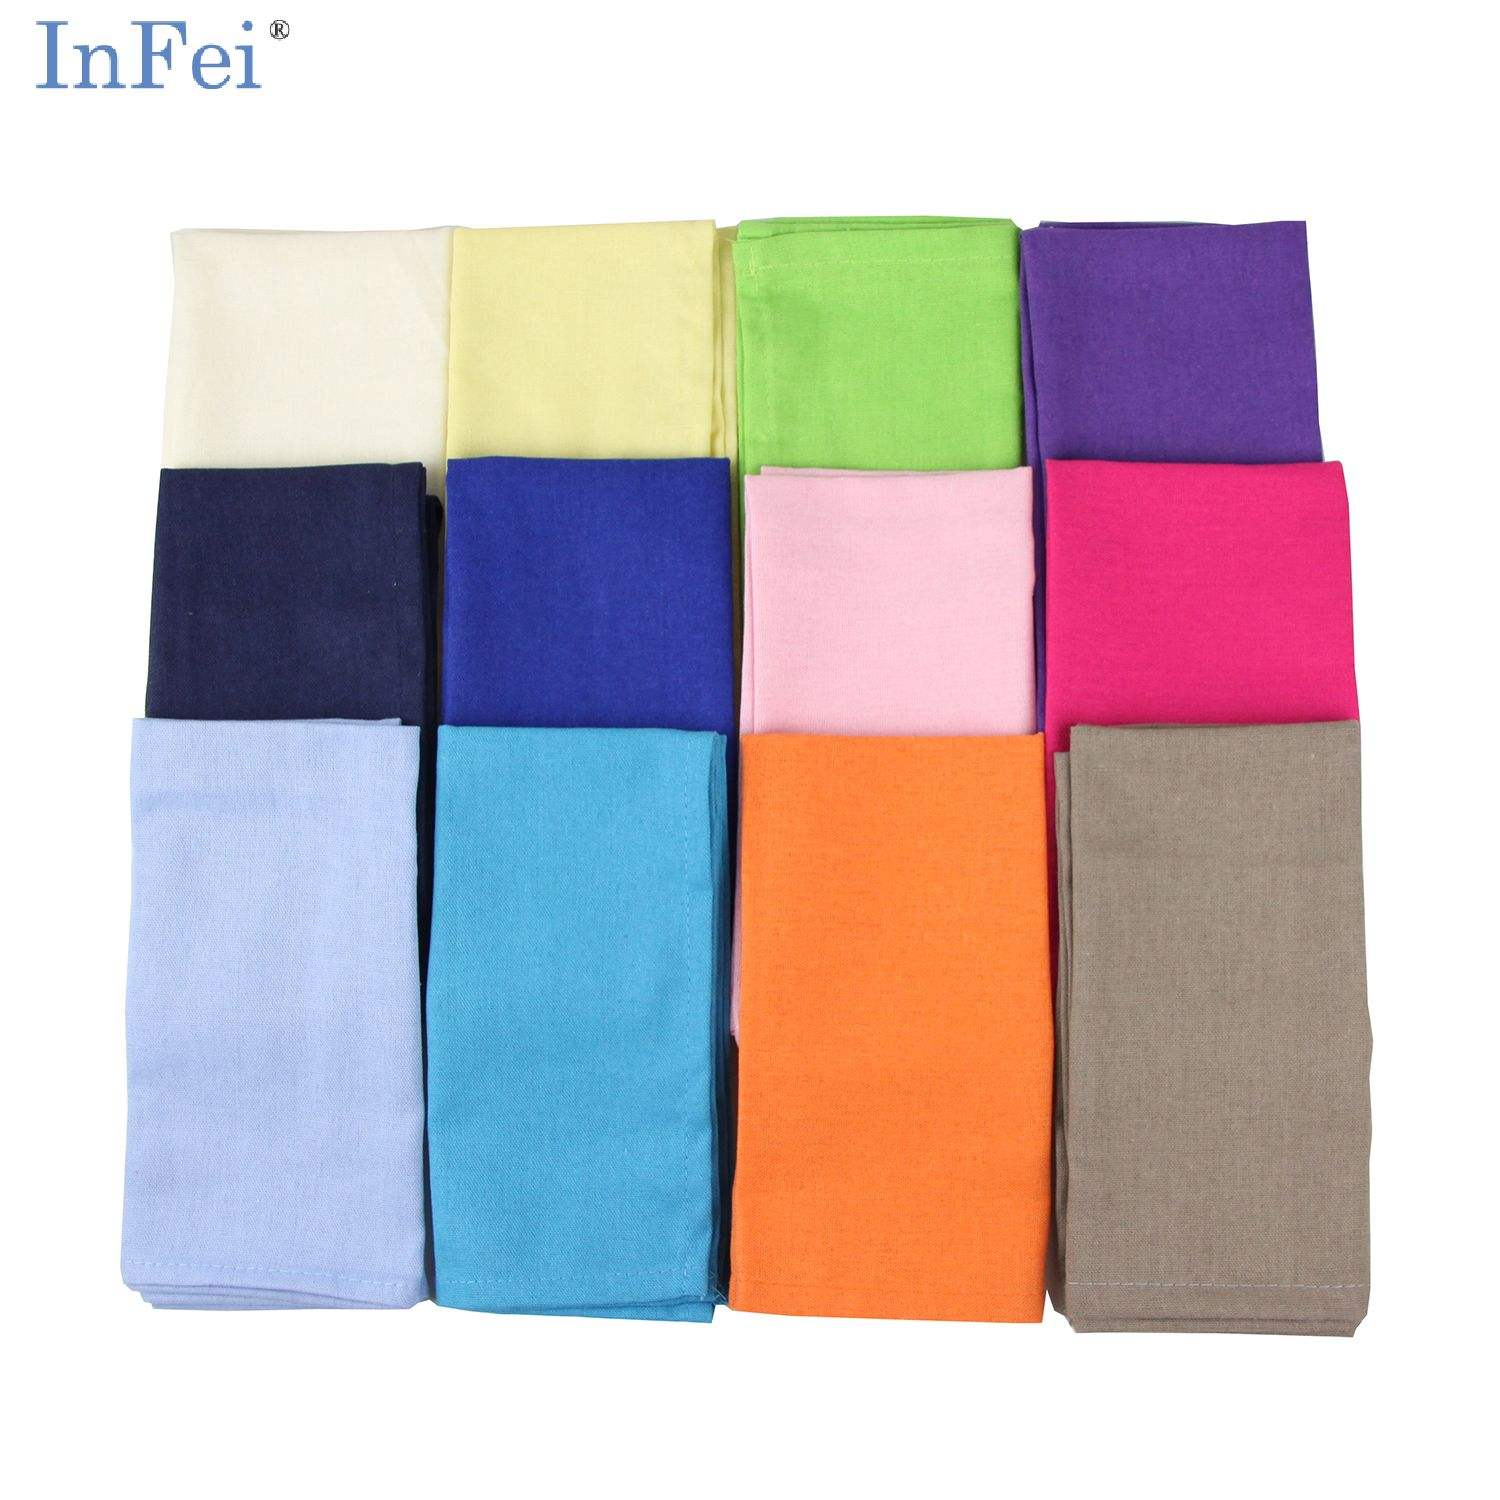 40x40 cm/15.7 x 15.7 Inches Soft Solid Color Linen Cotton Dinner Cocktail Cloth Napkins for Events & Home Use